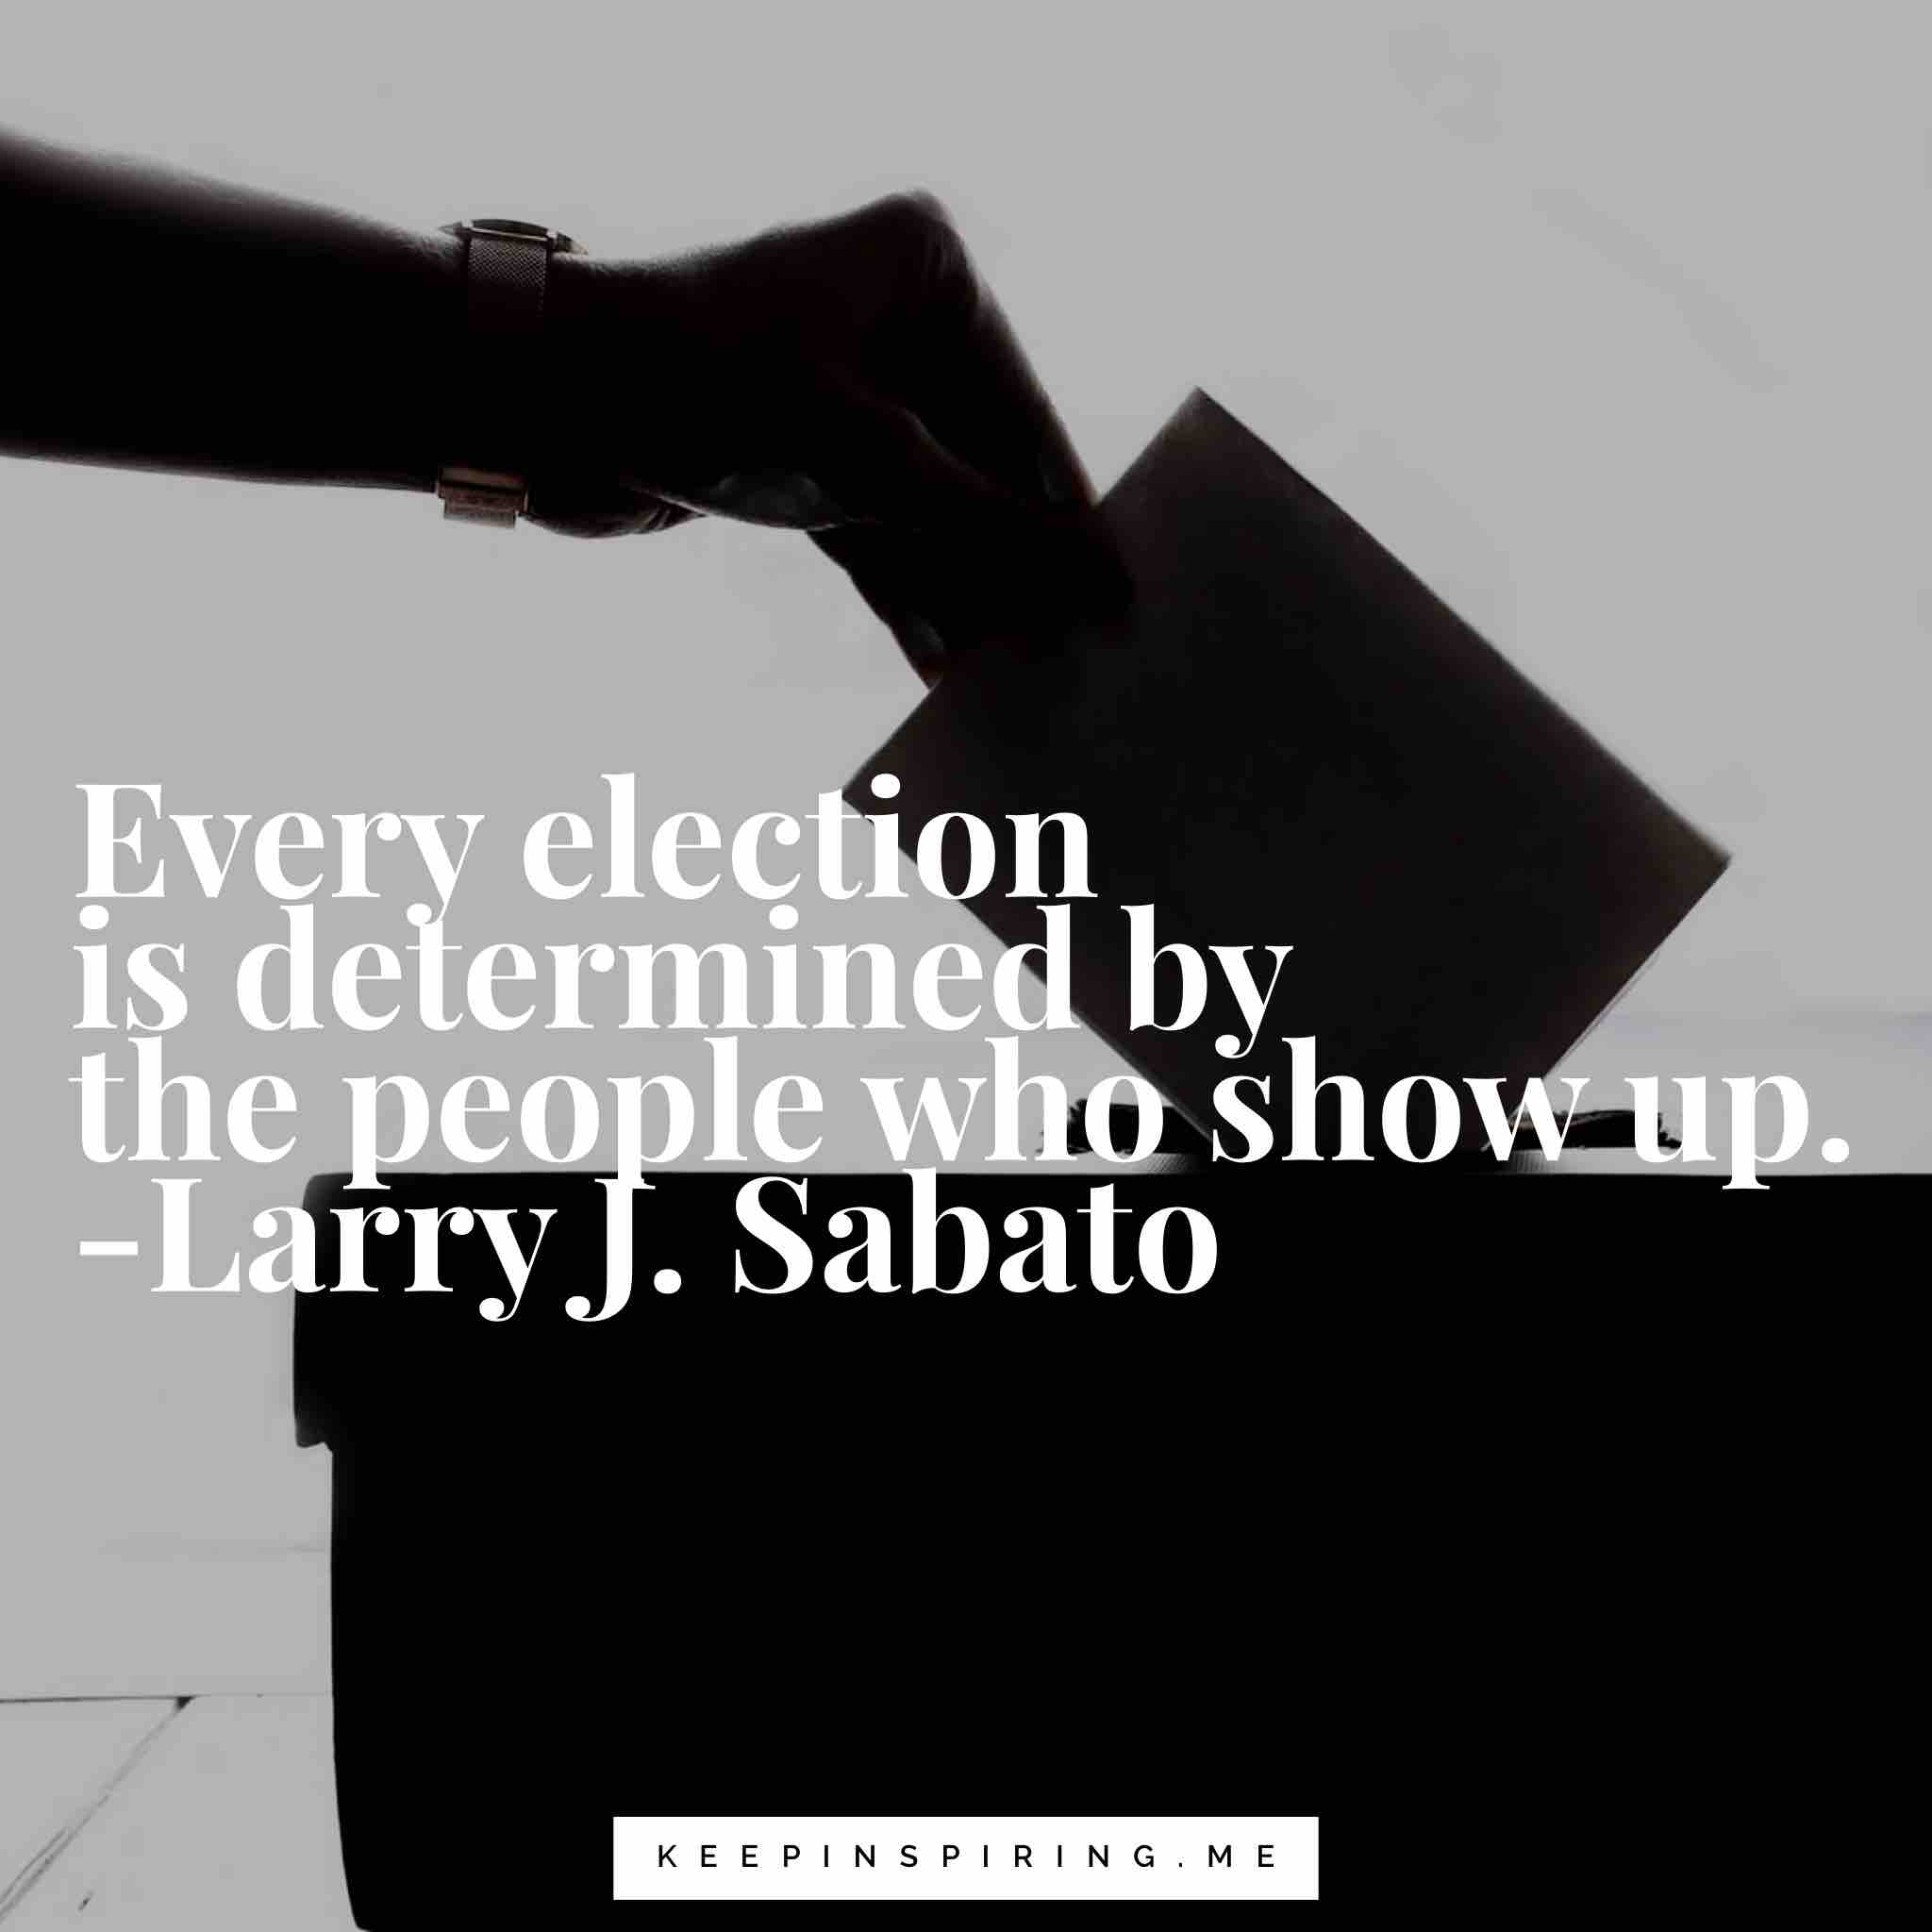 every-election-determined-by-people-who-show-up-larry-sabato-quote-min